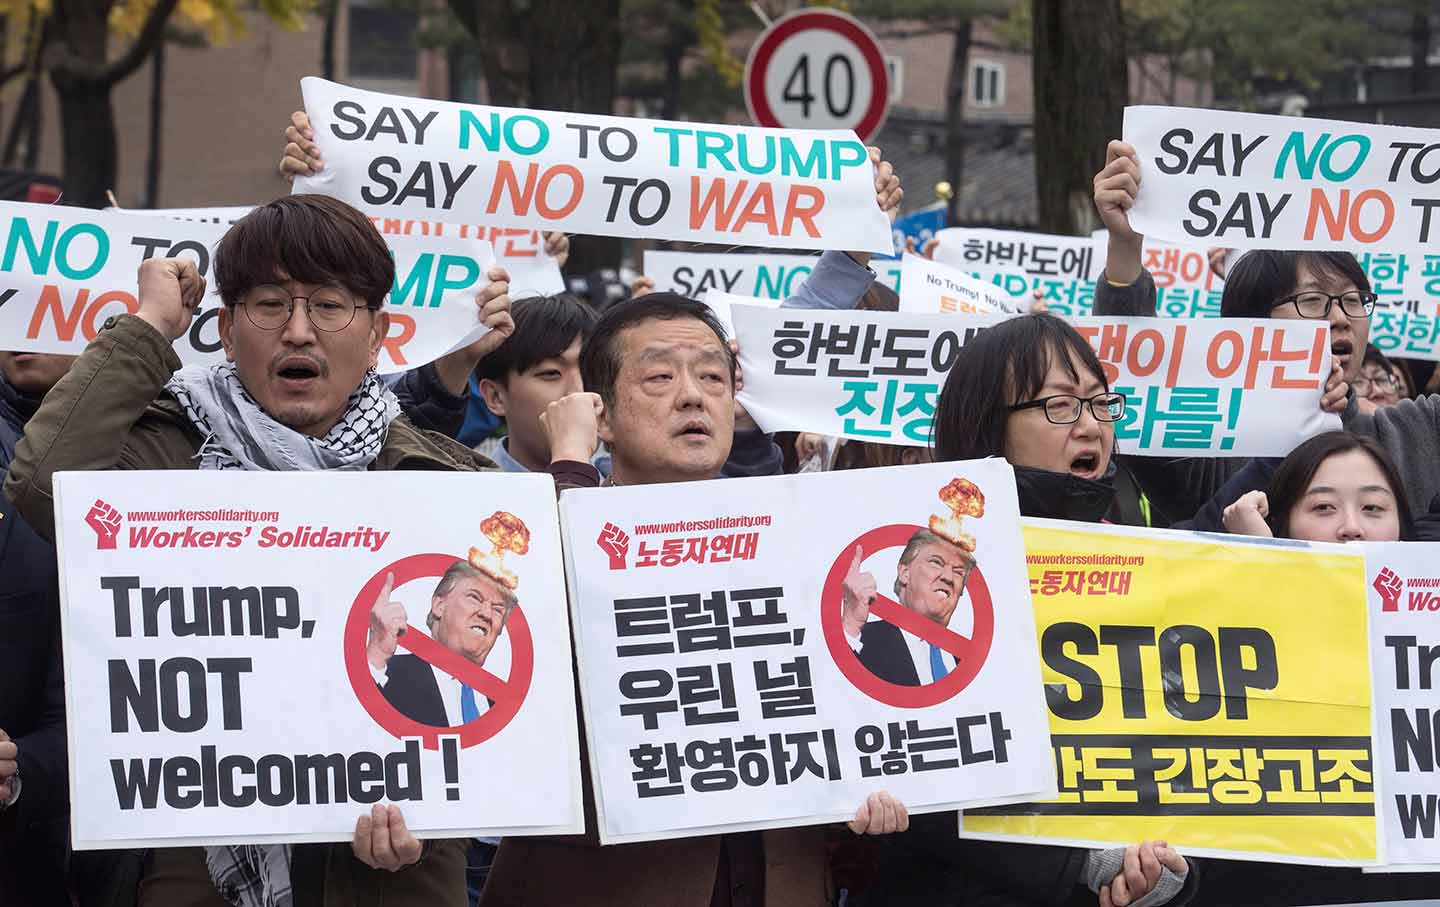 South Korea Trump Protest